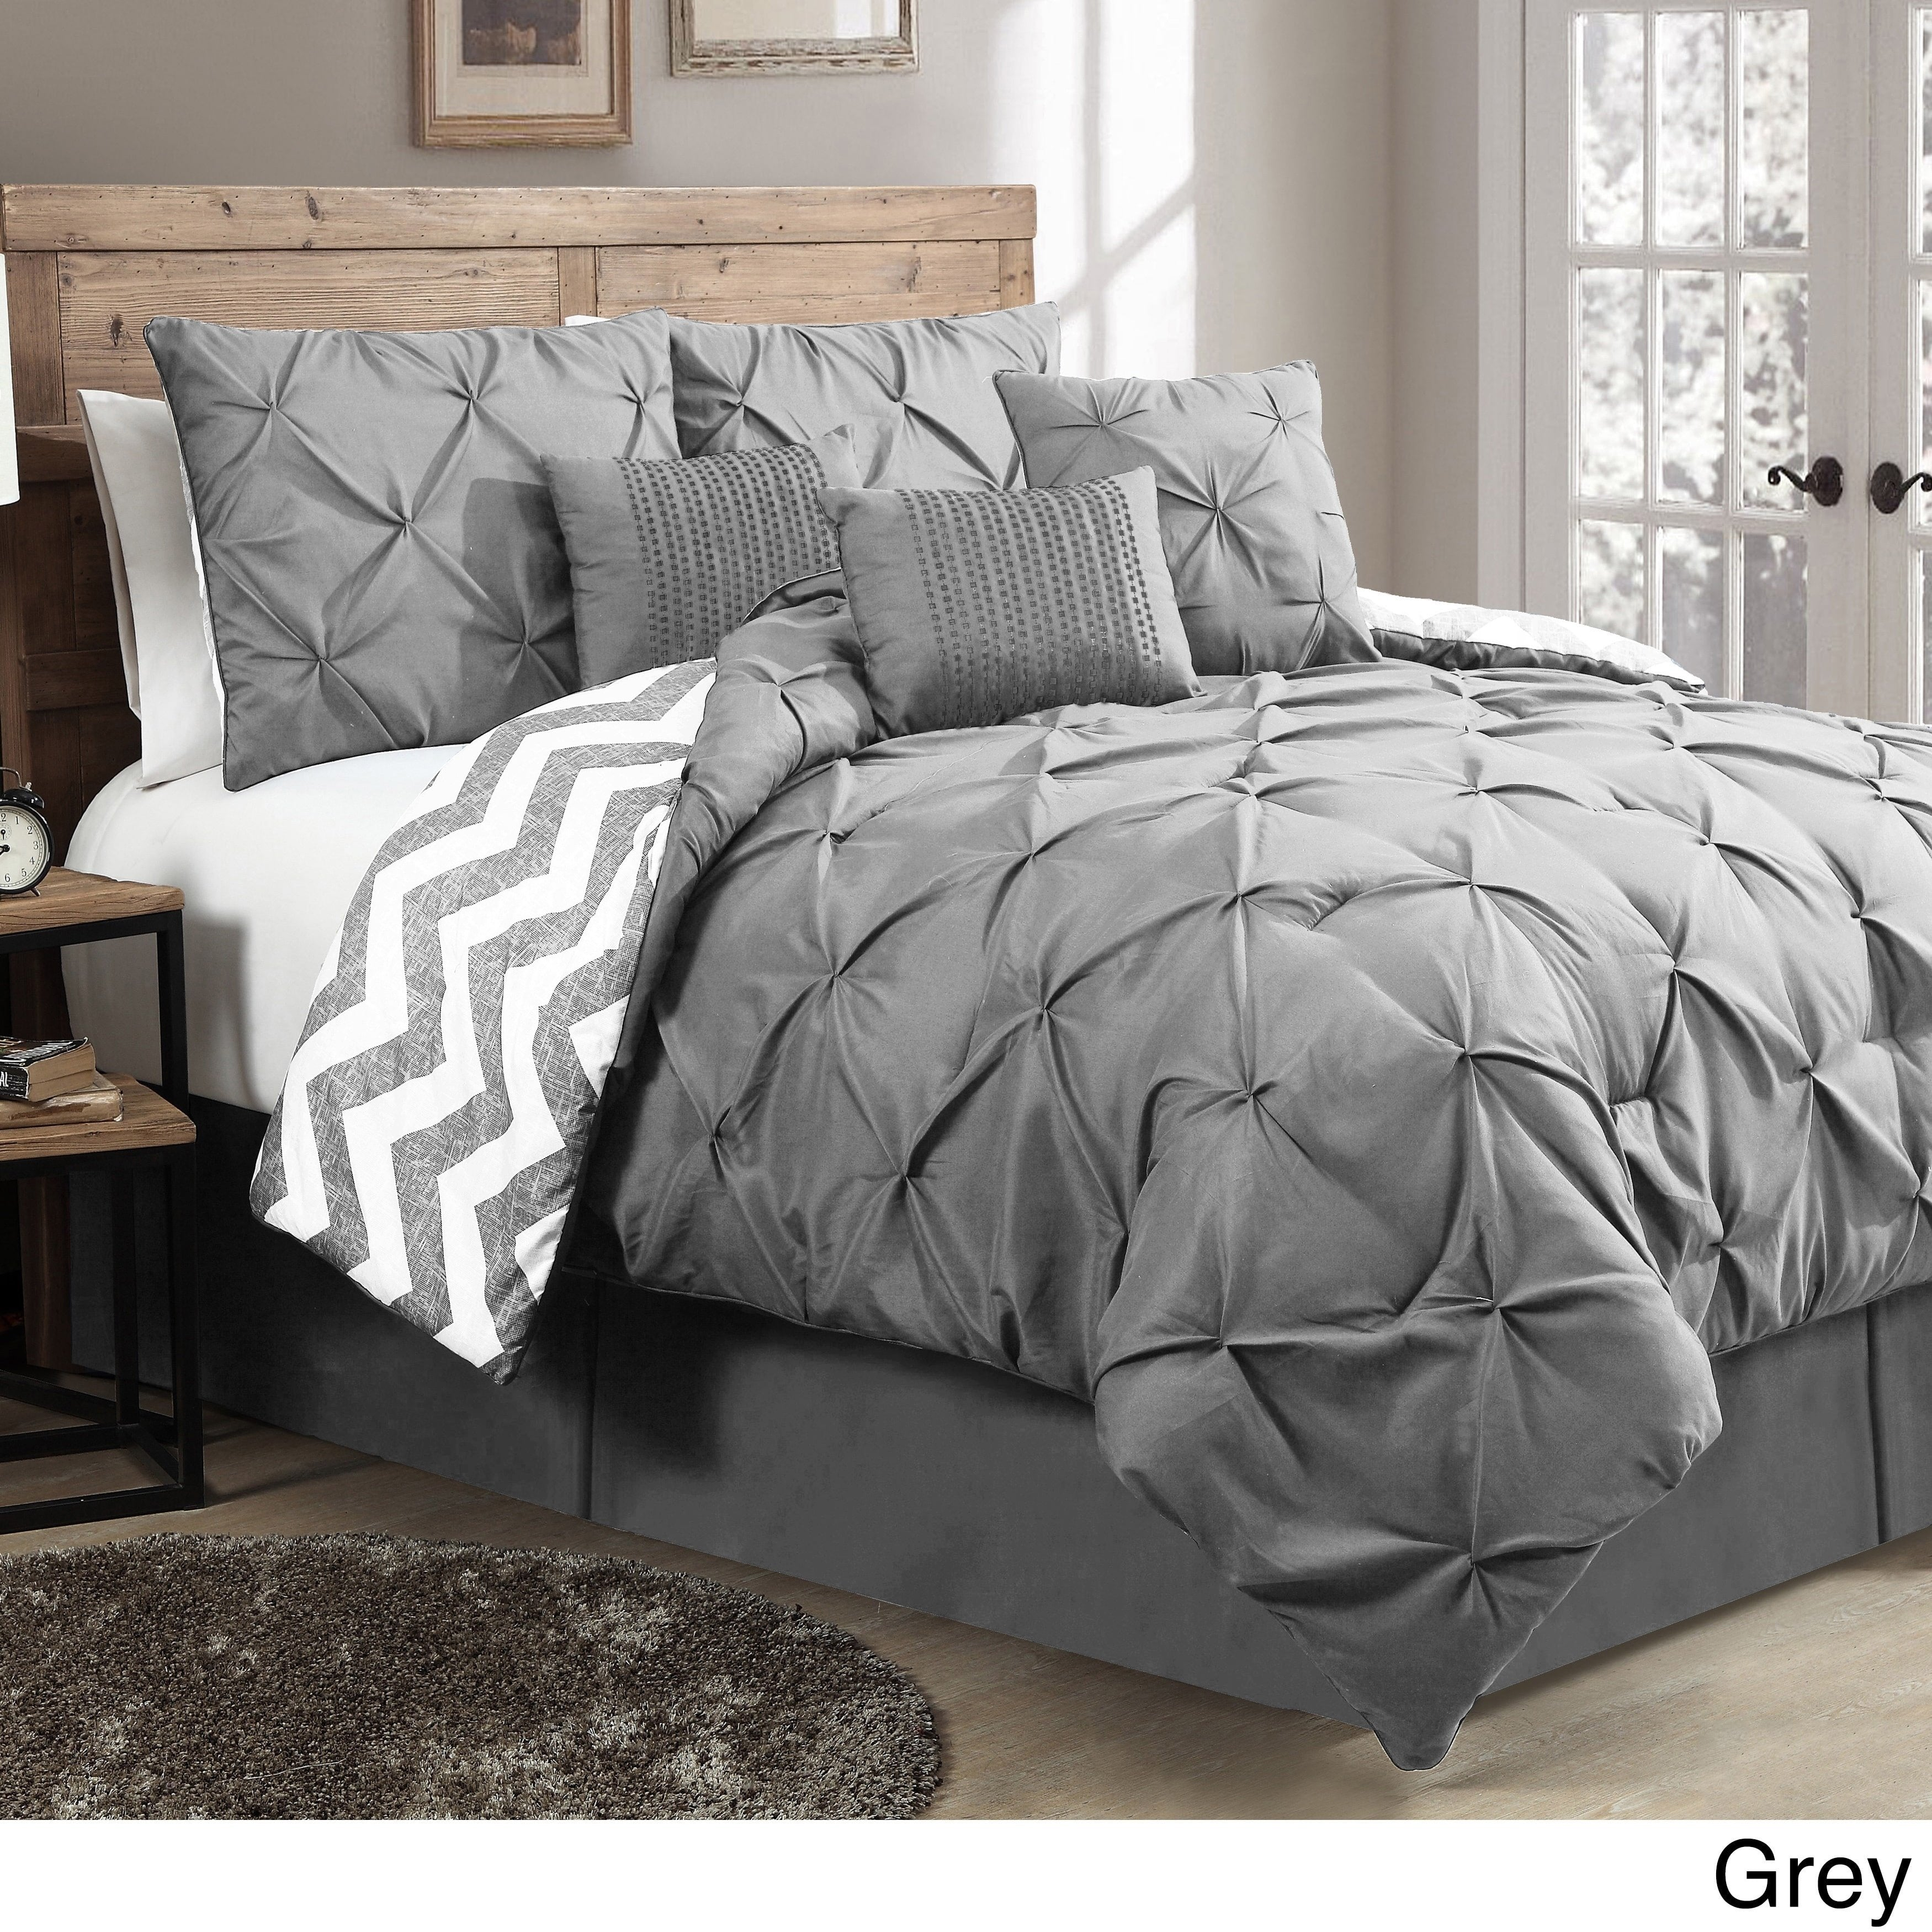 Pinch Pleat Comforter Set Pintuck Diamond Textured Bedding Chevron Stripes Design Master Bedrooms Modern Casual Solid